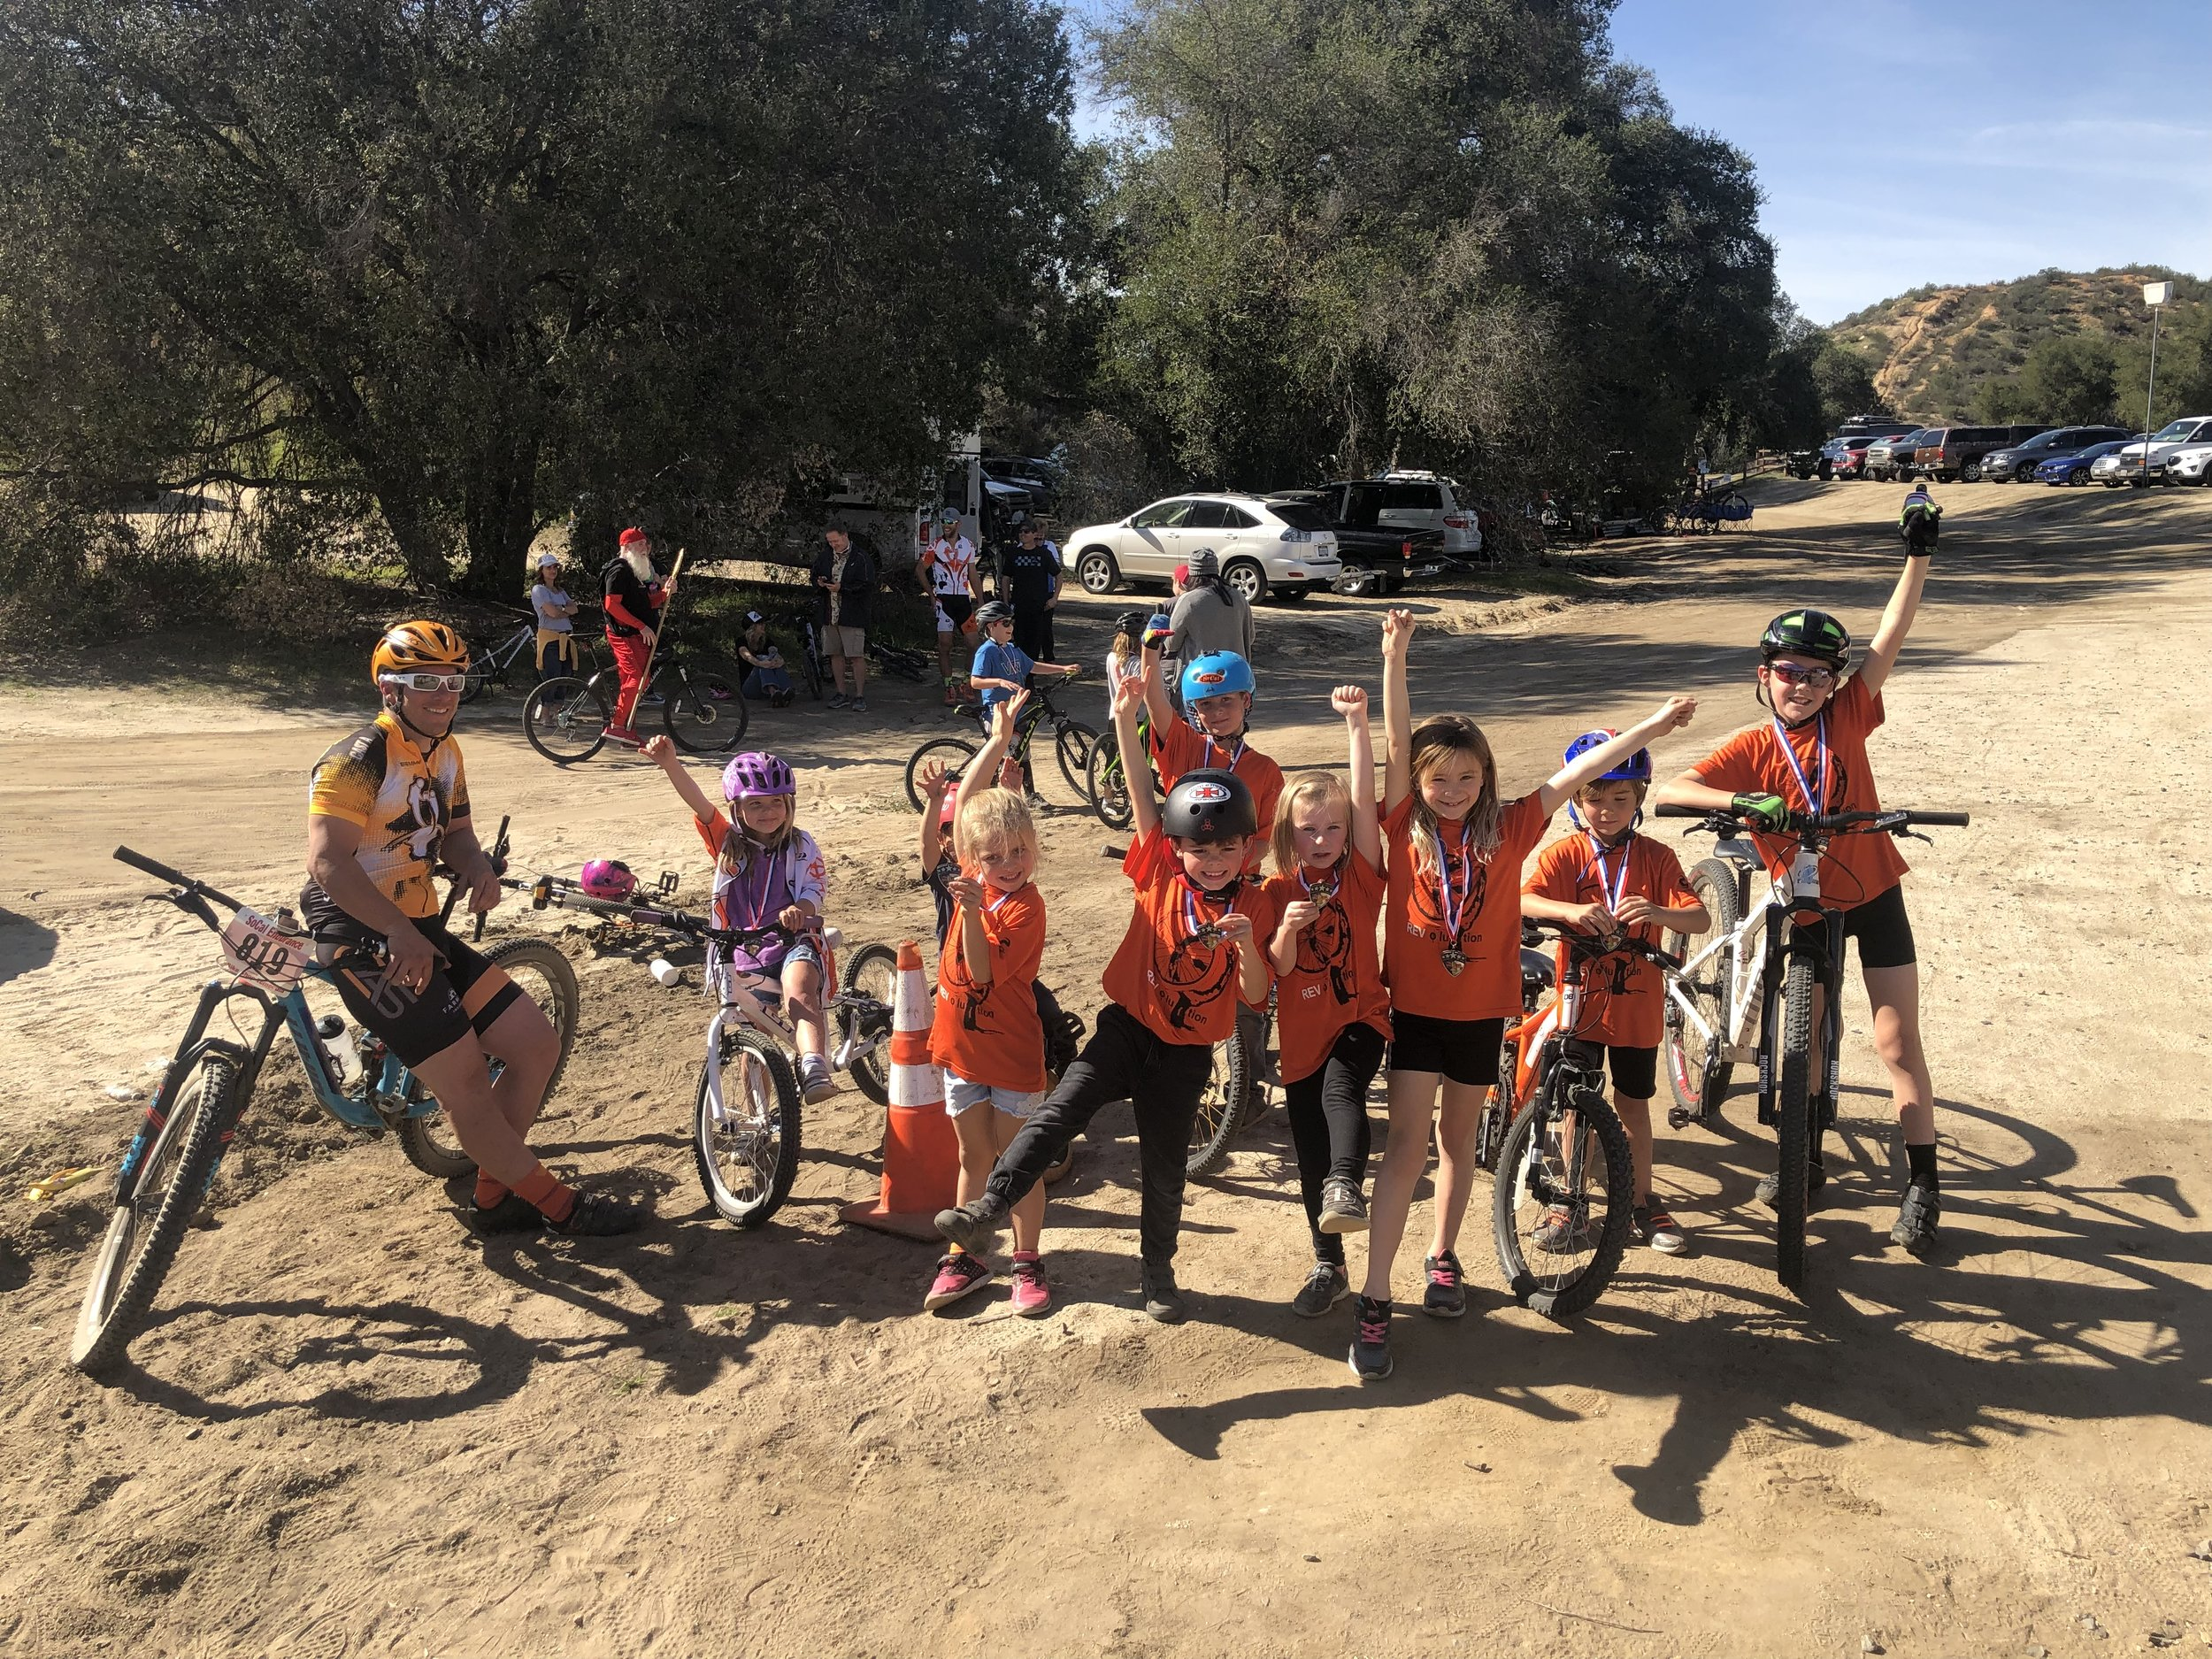 REVOLUTIONS Bike Race - Rev the Hearts of Our Youth. Aspen Institute's Study on Project Play states